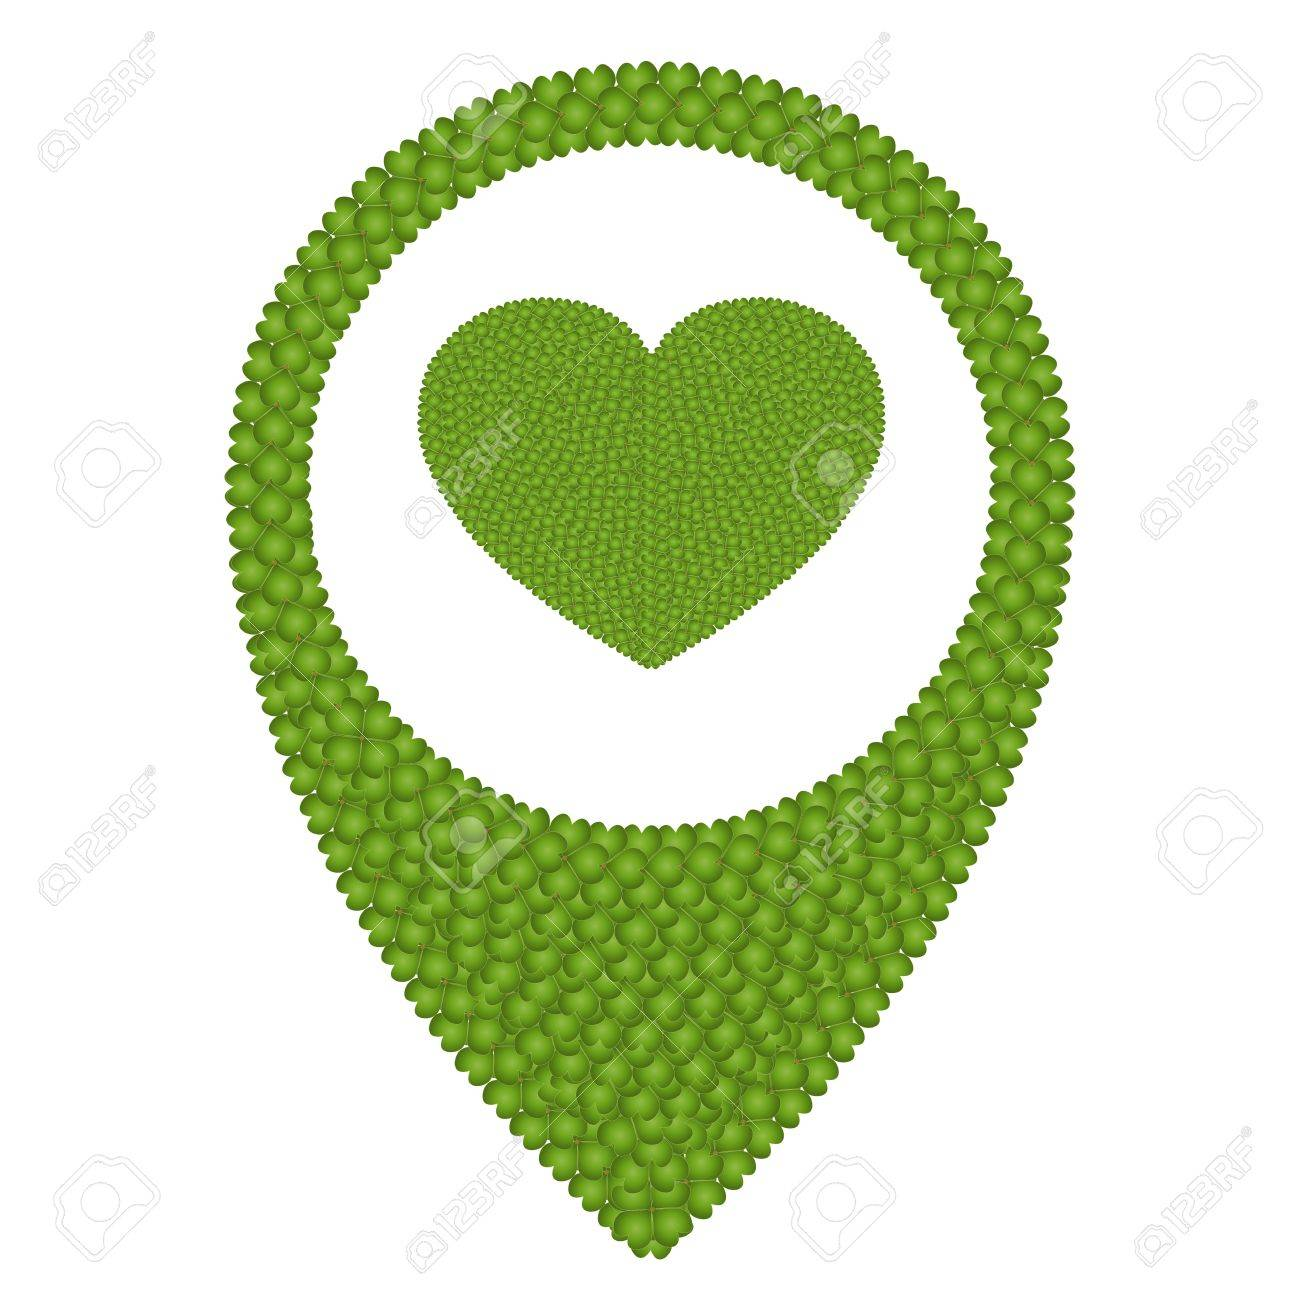 Ecology Concept, Fresh Green Four Leaf Clover Forming Heart Shape Symbol in Navication Icon Isolated on White Background Stock Photo - 17155735